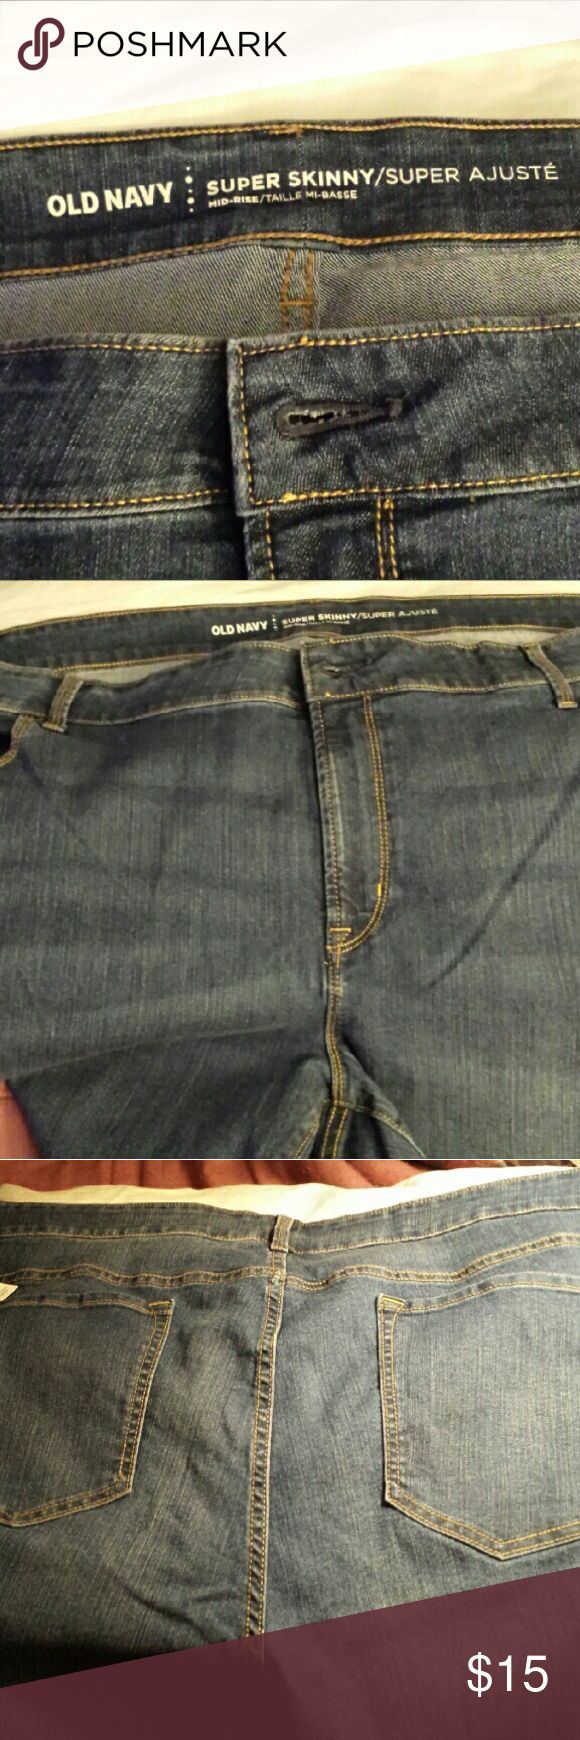 Women's Jeans Selling NWT women plus tall size 28 skinny jeans. Old Navy Jeans Skinny